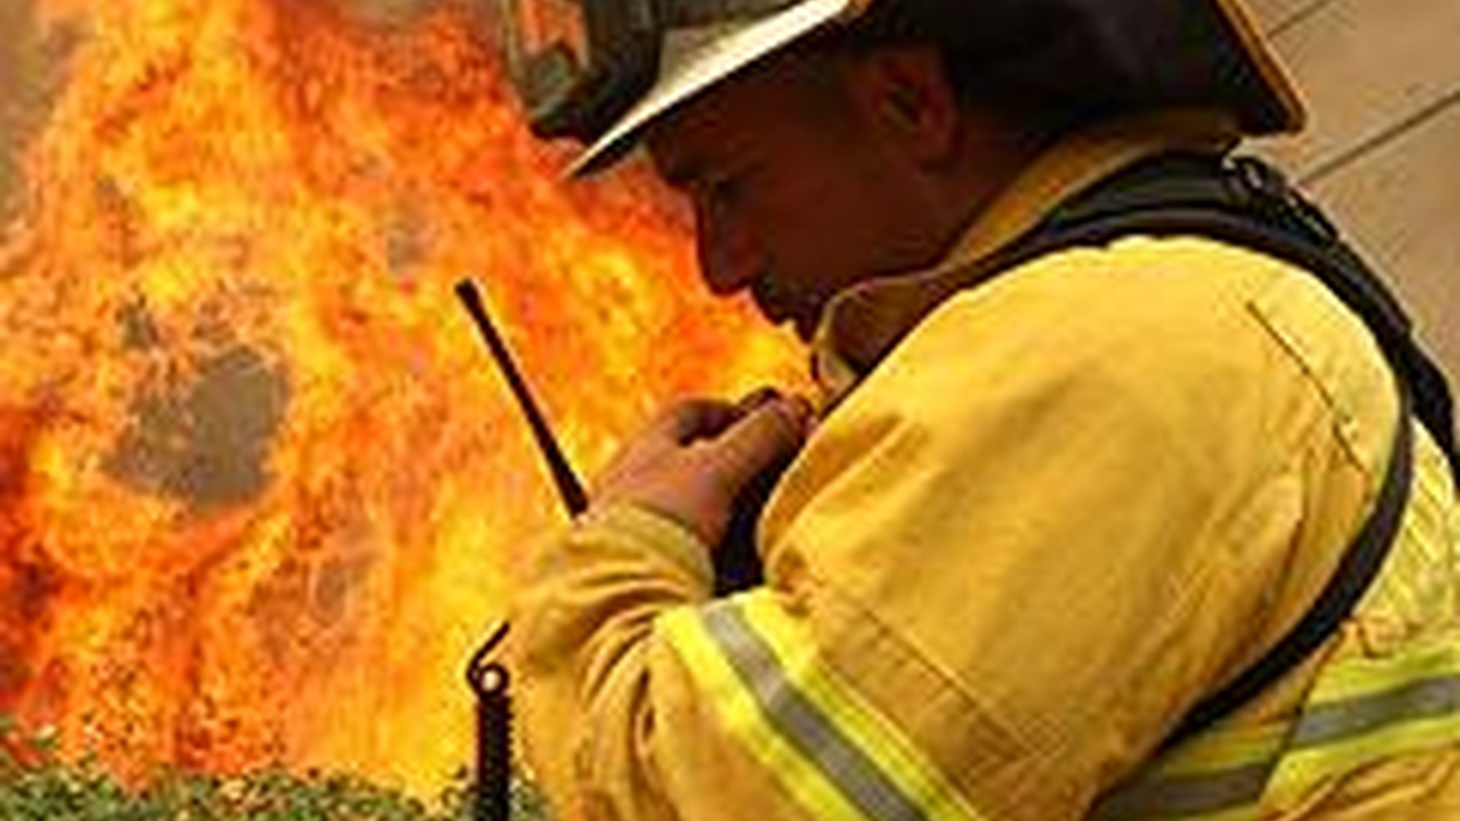 The US is losing the fight against wildfires, which are bigger, more